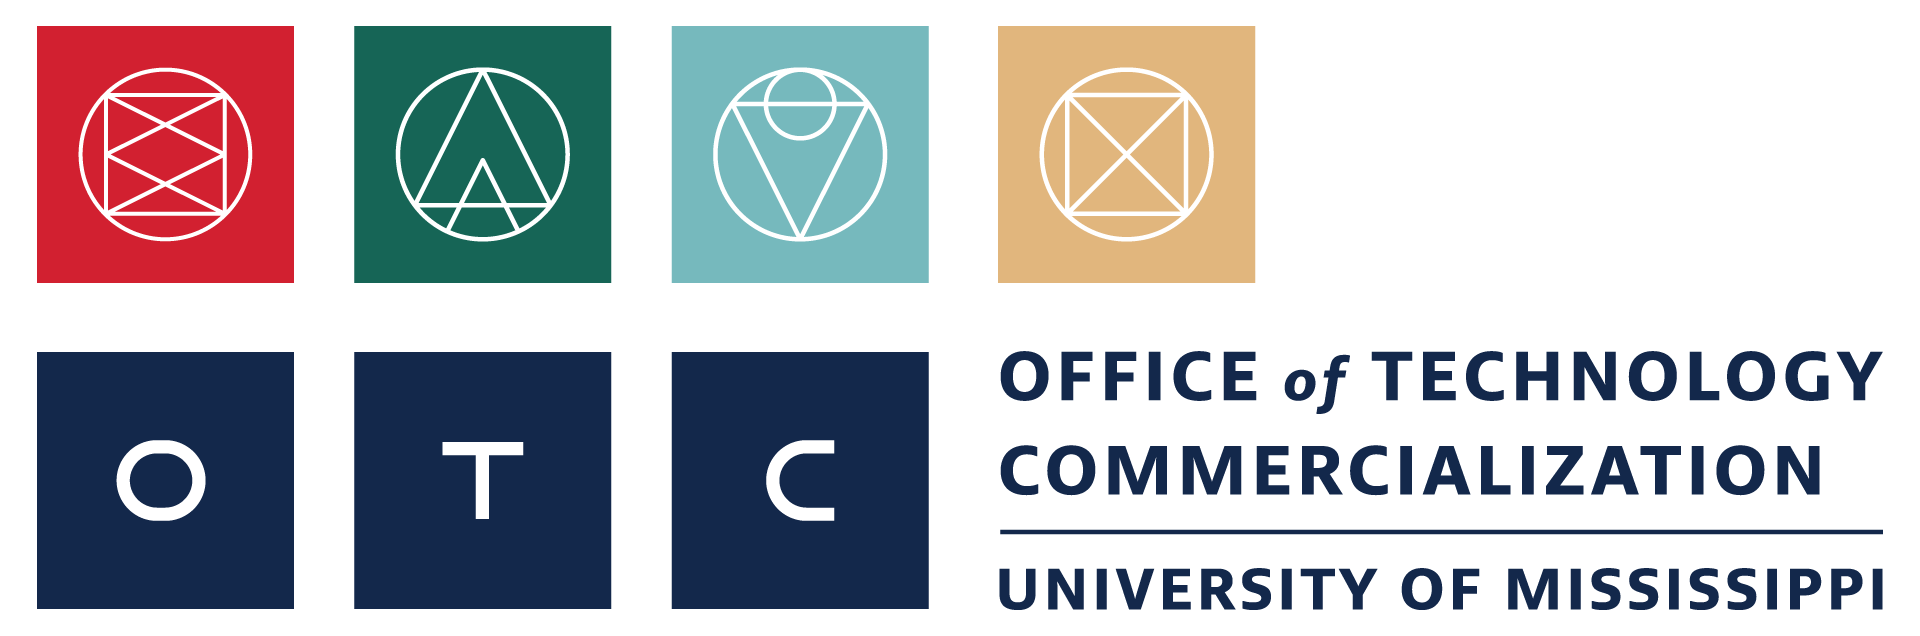 The University of Mississippi Office of Technology and Commercialization